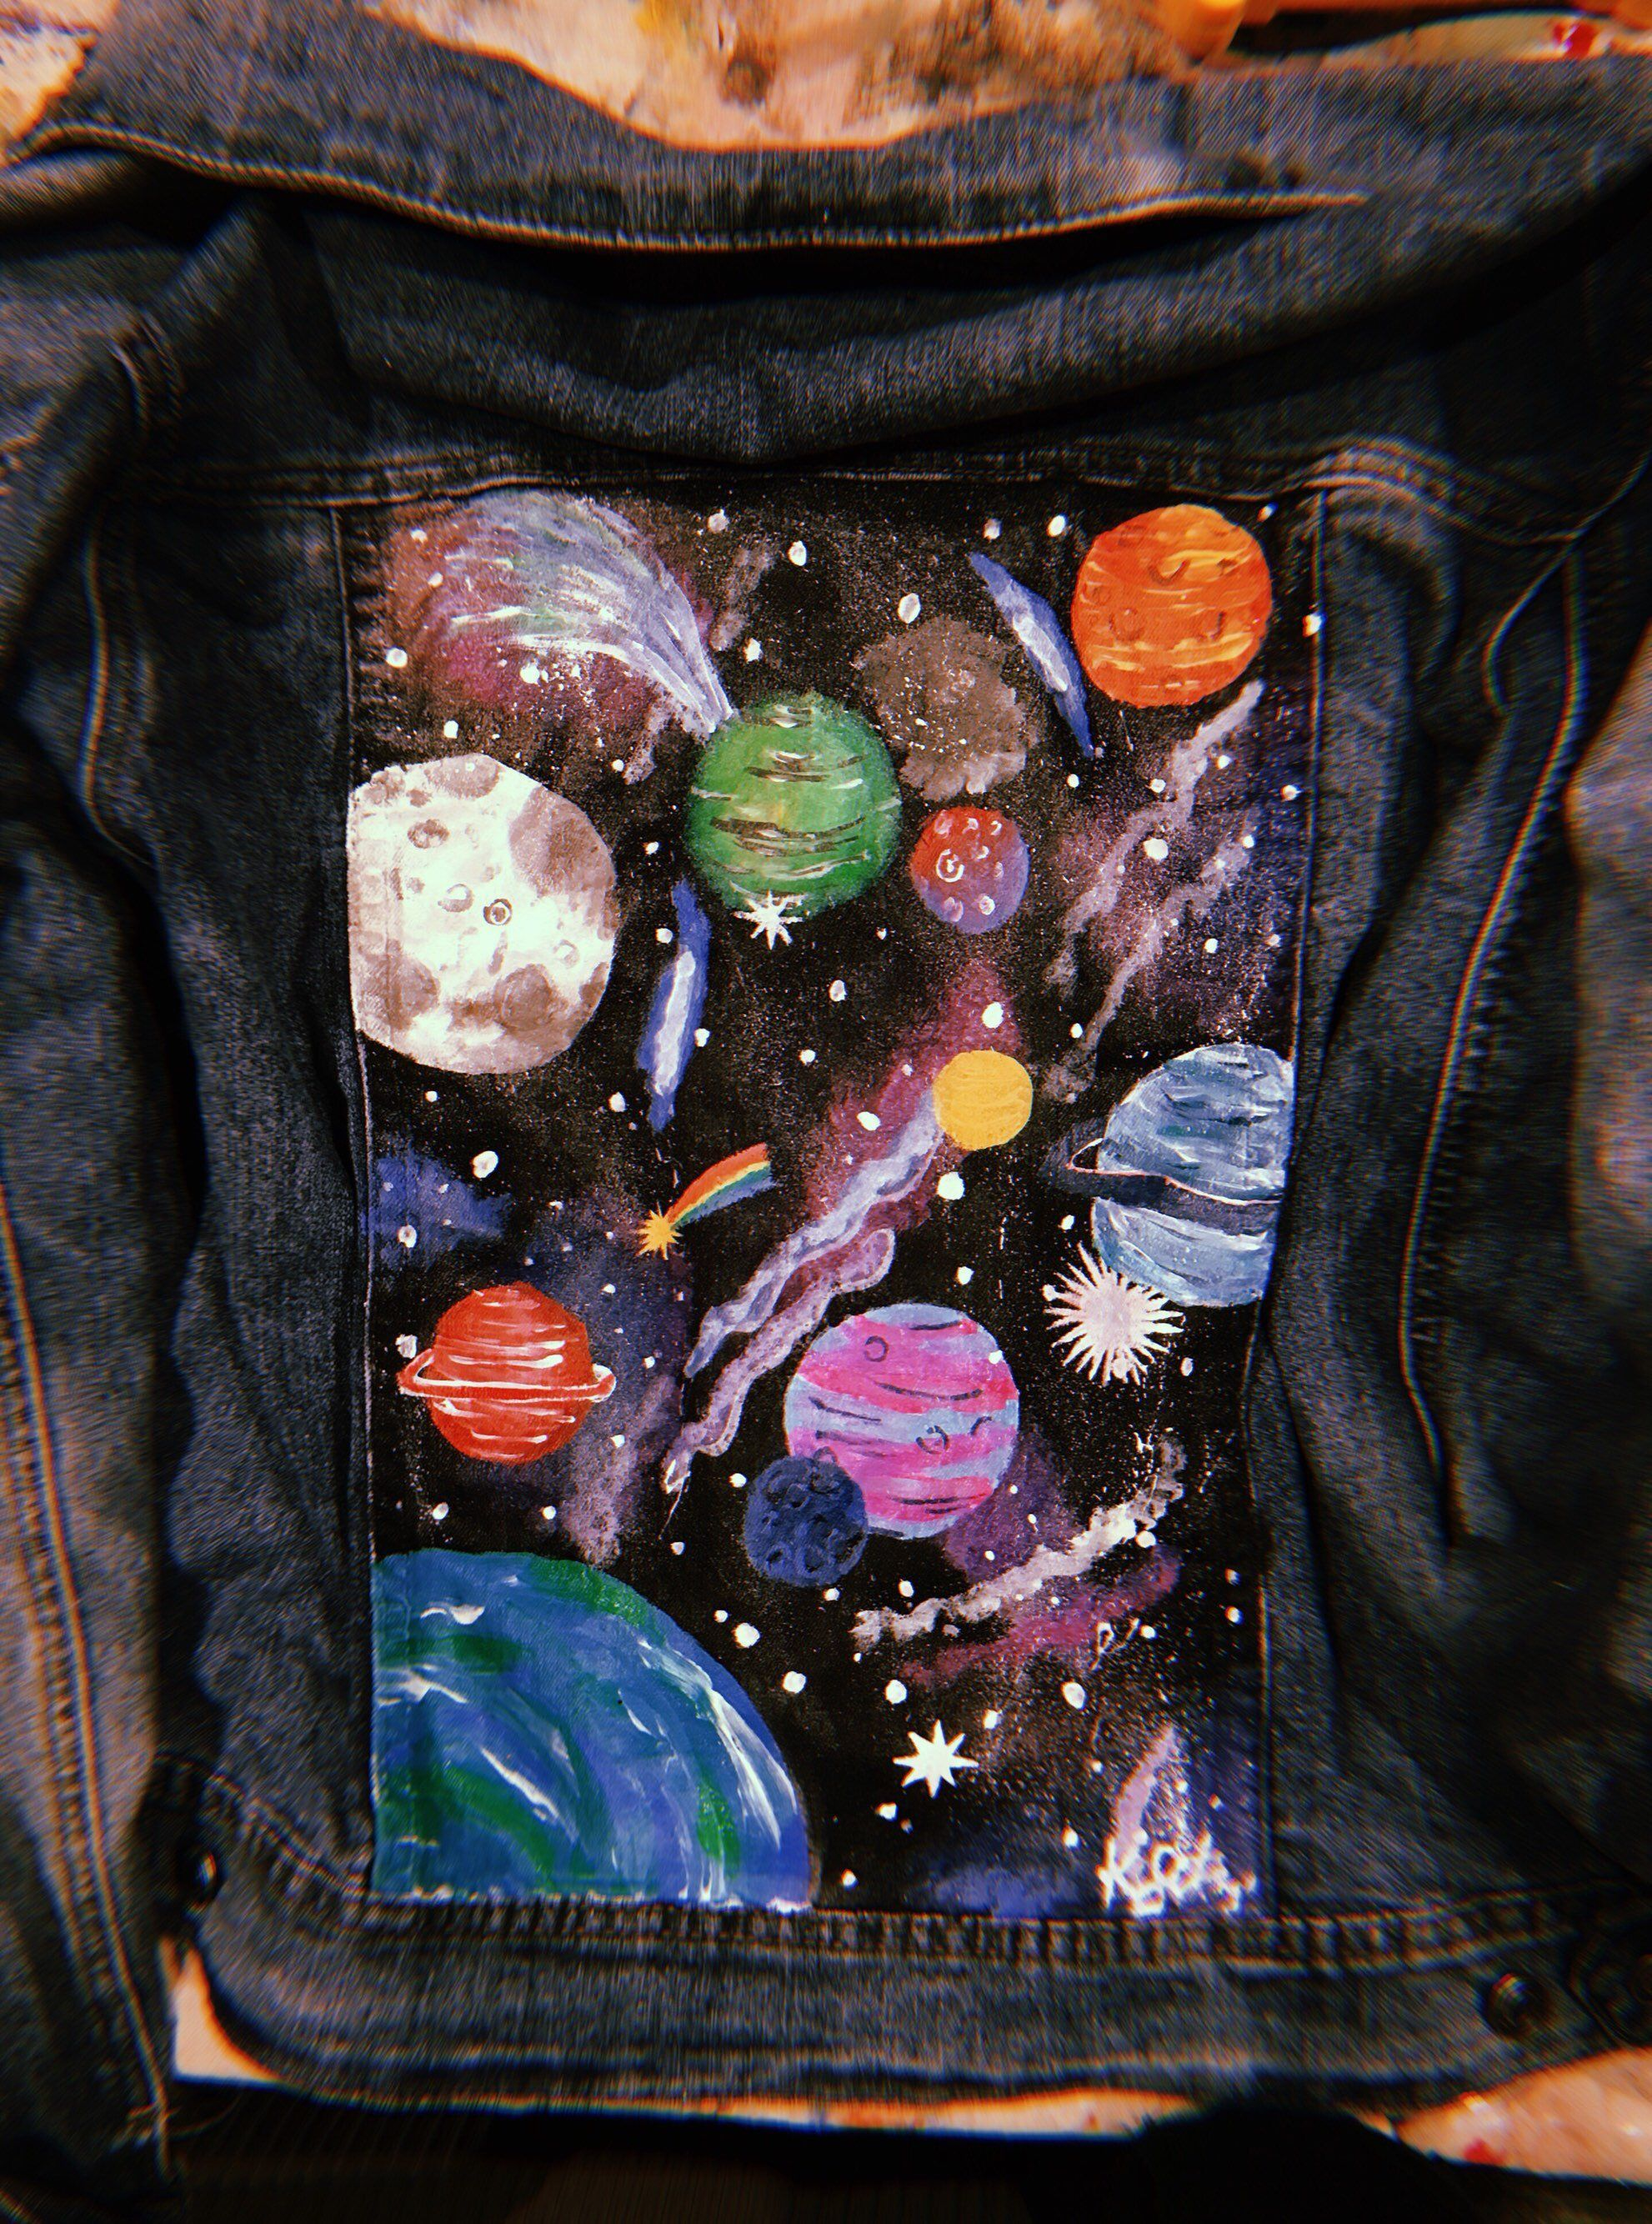 Excited to share this item from my #etsy shop: Glow in the dark hand painted space jean jacket    Source by sakura0106 #Clothing painting #Dark #Glow #Hand #Jacket #Jean #Painted #Space